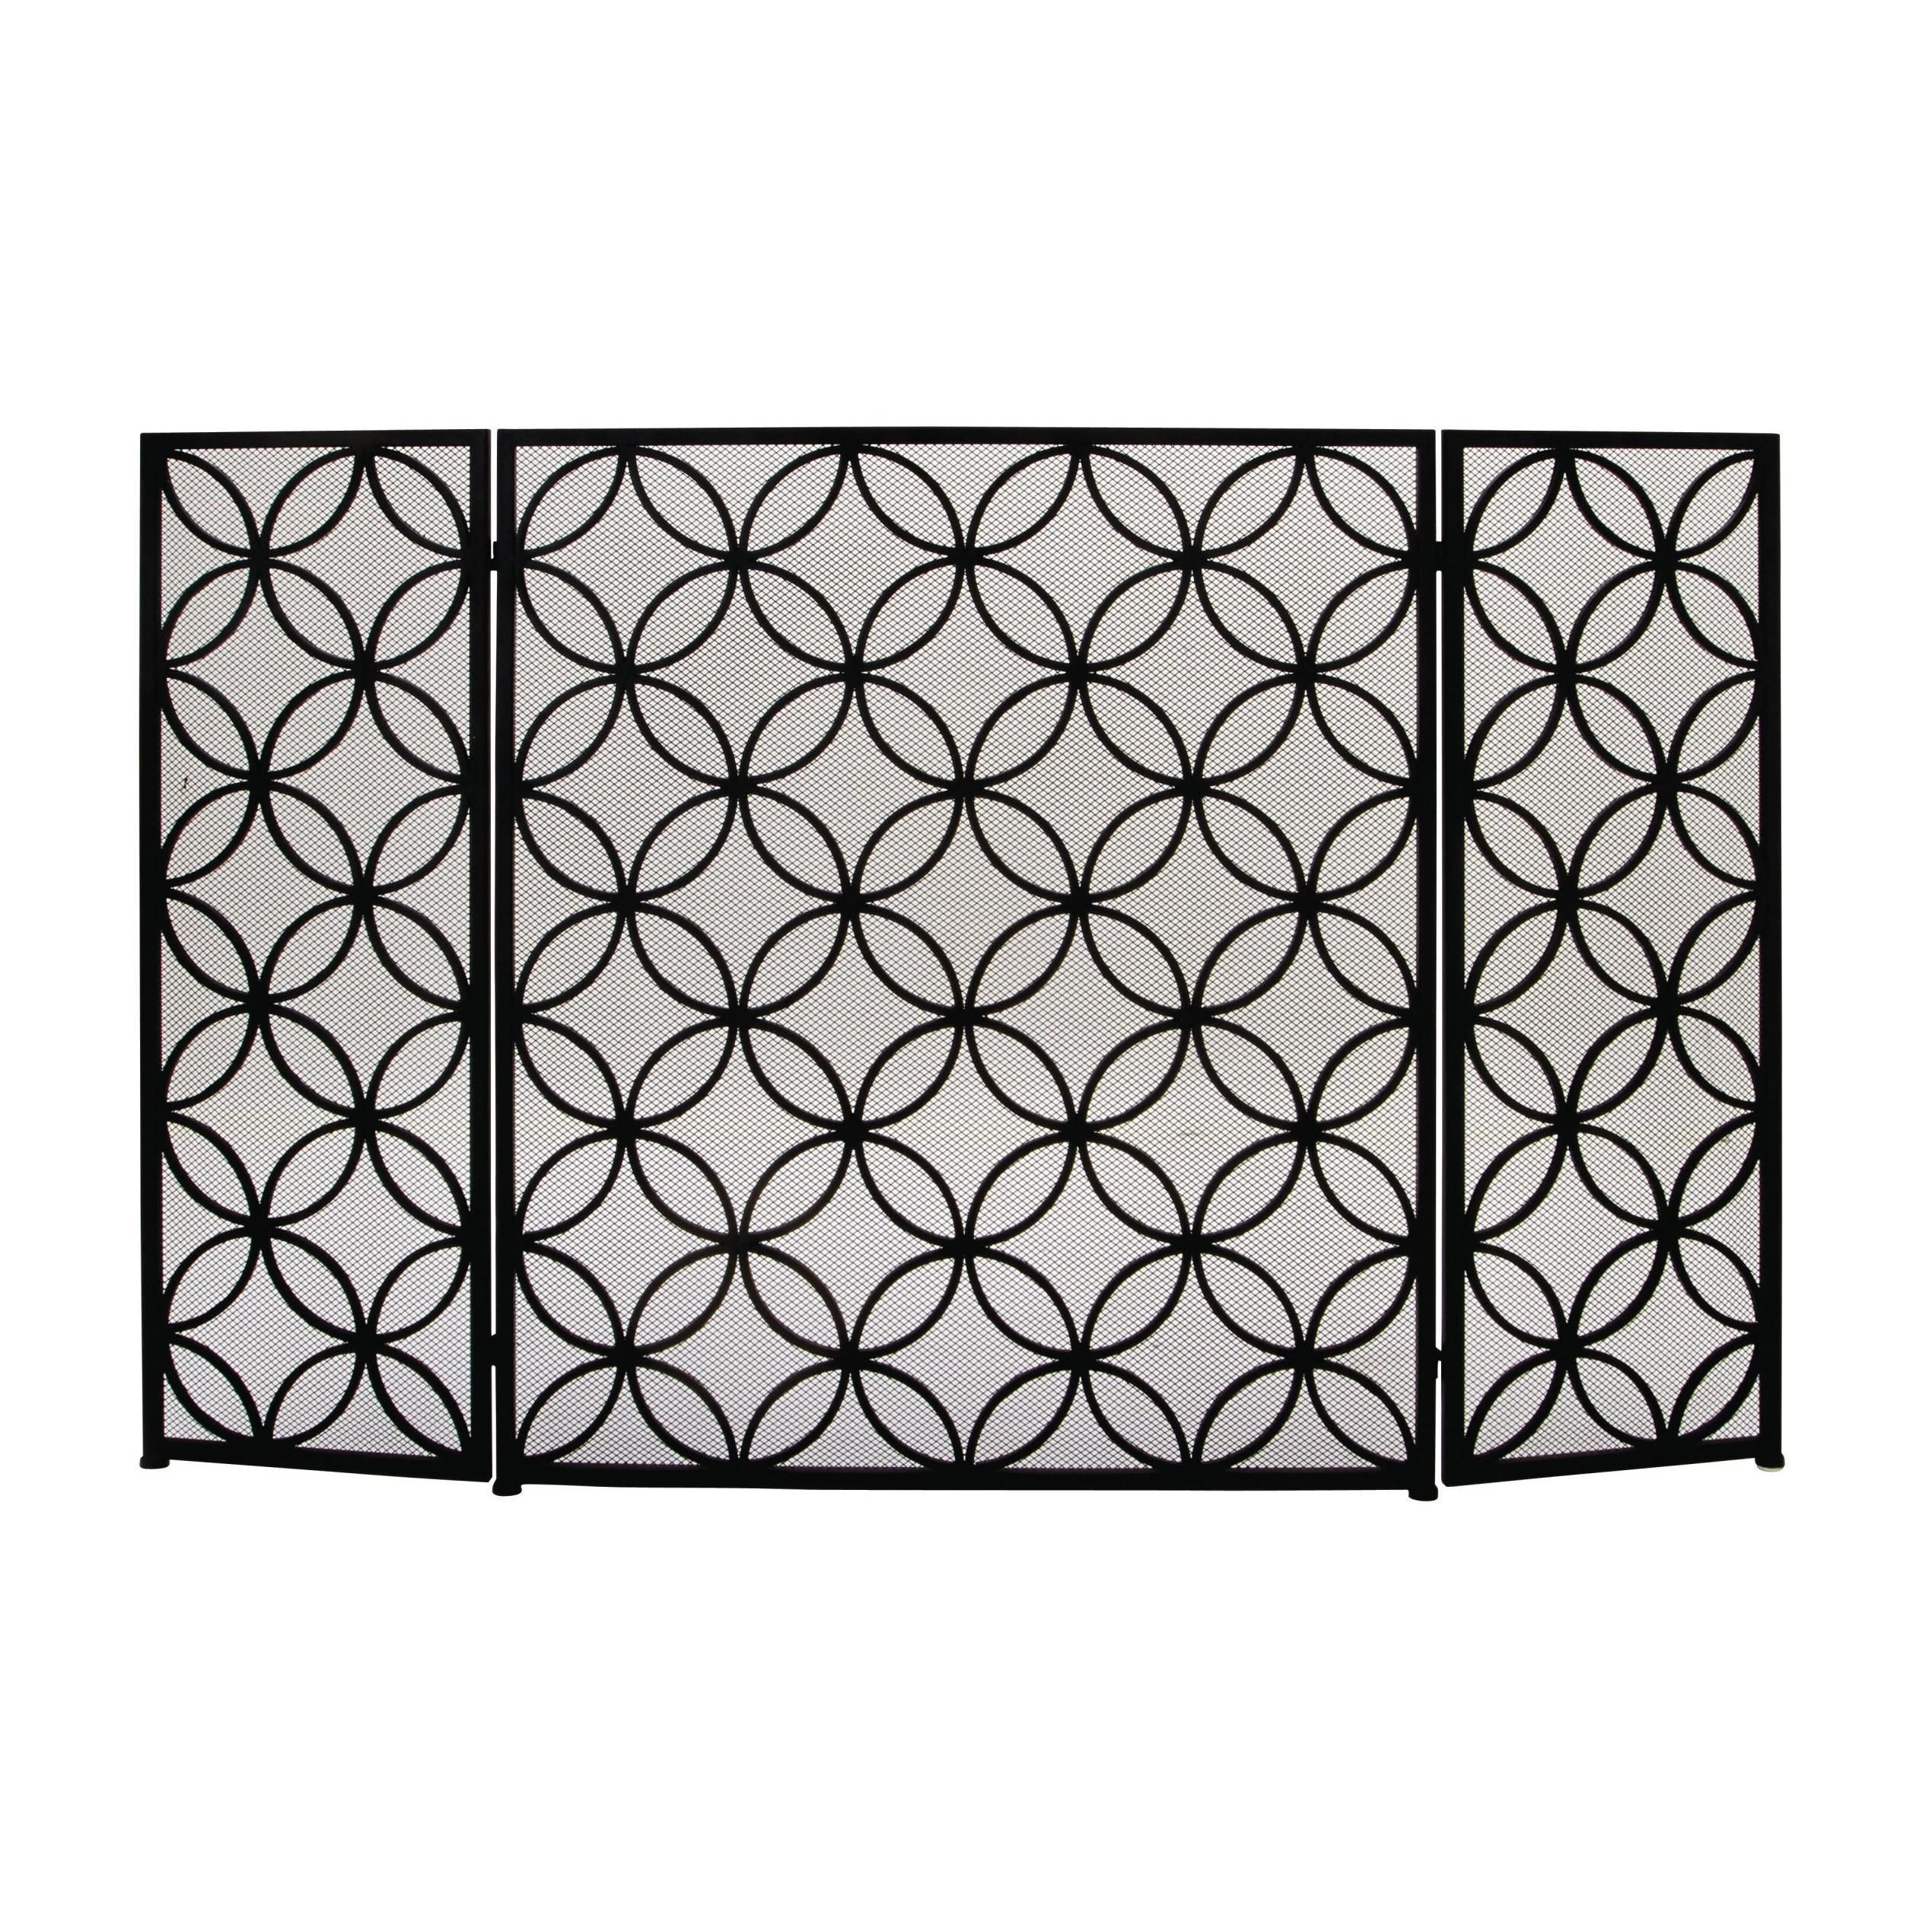 Groovy Benzara Striking Metal 48 Inch X 30 Inch Fire Screen Dcor Interior Design Ideas Clesiryabchikinfo